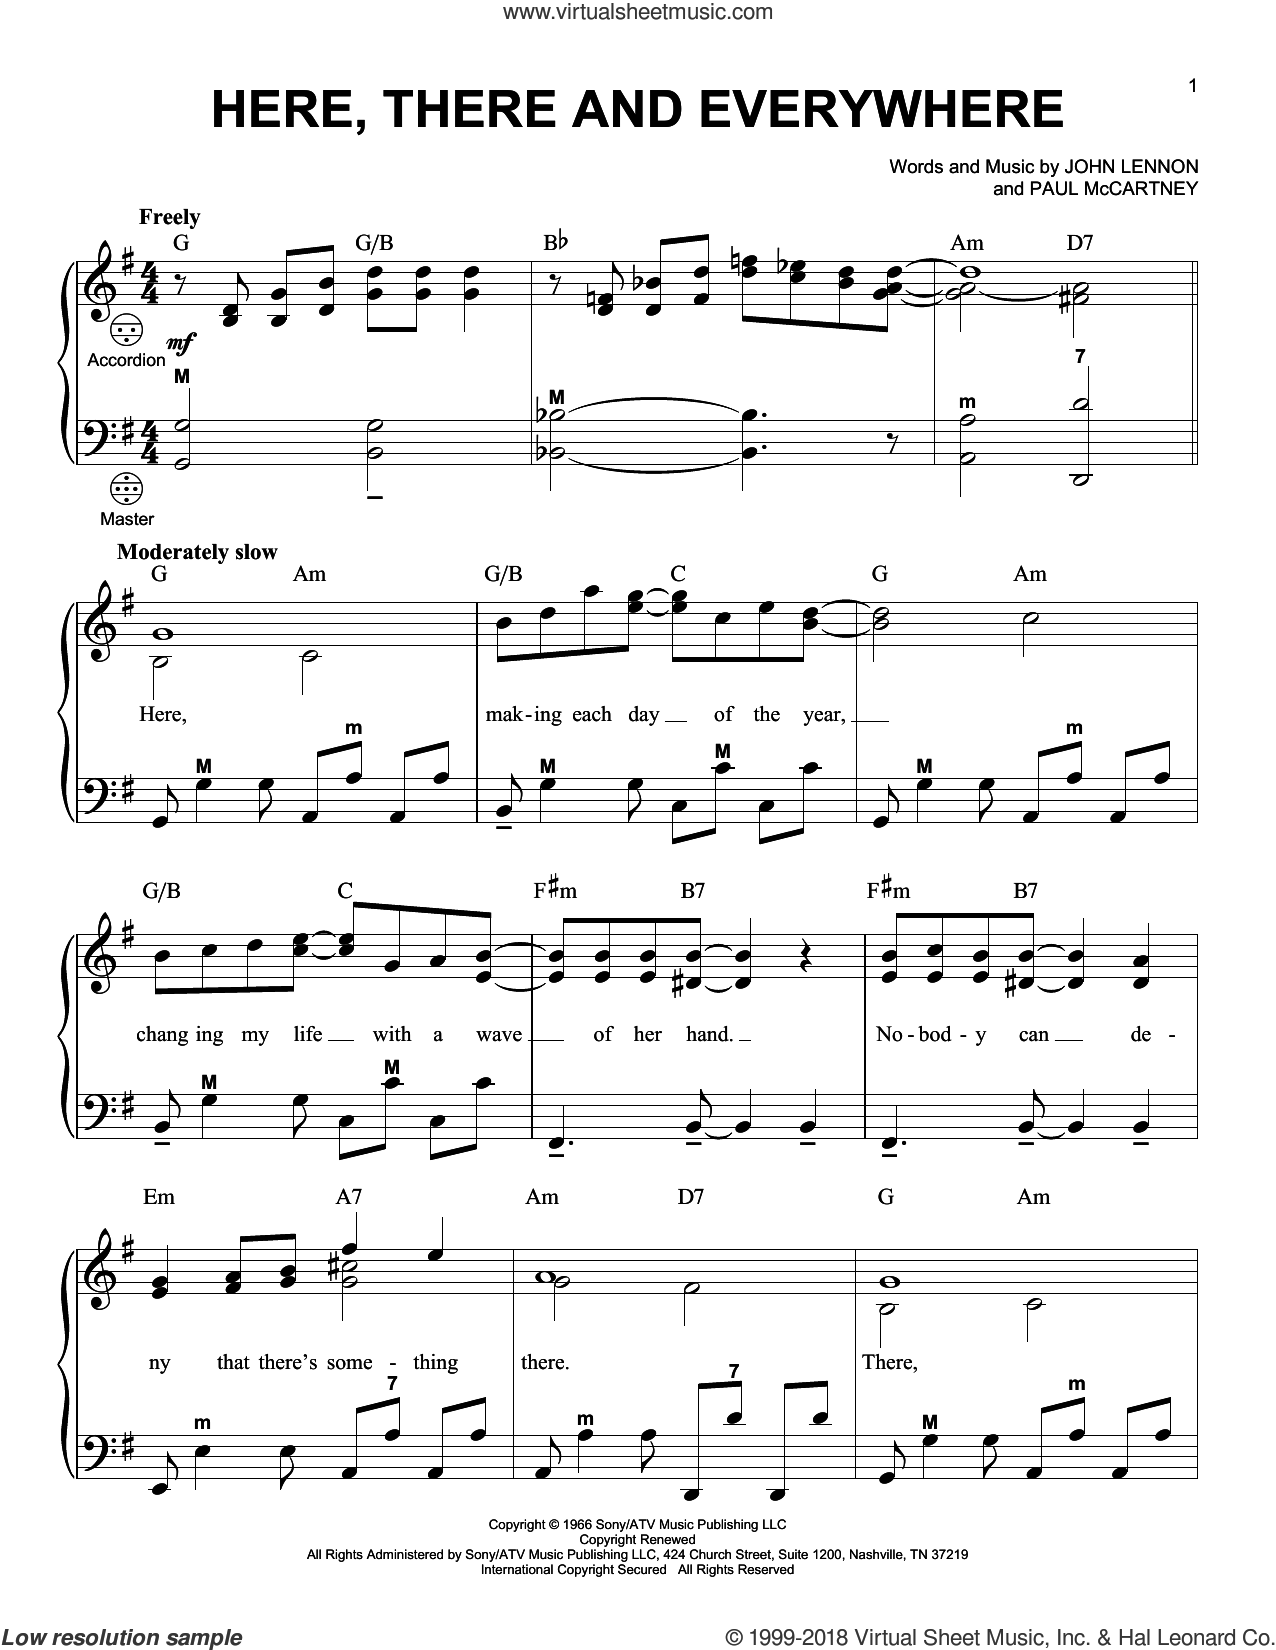 Here, There And Everywhere sheet music for accordion by The Beatles, John Lennon and Paul McCartney, intermediate skill level